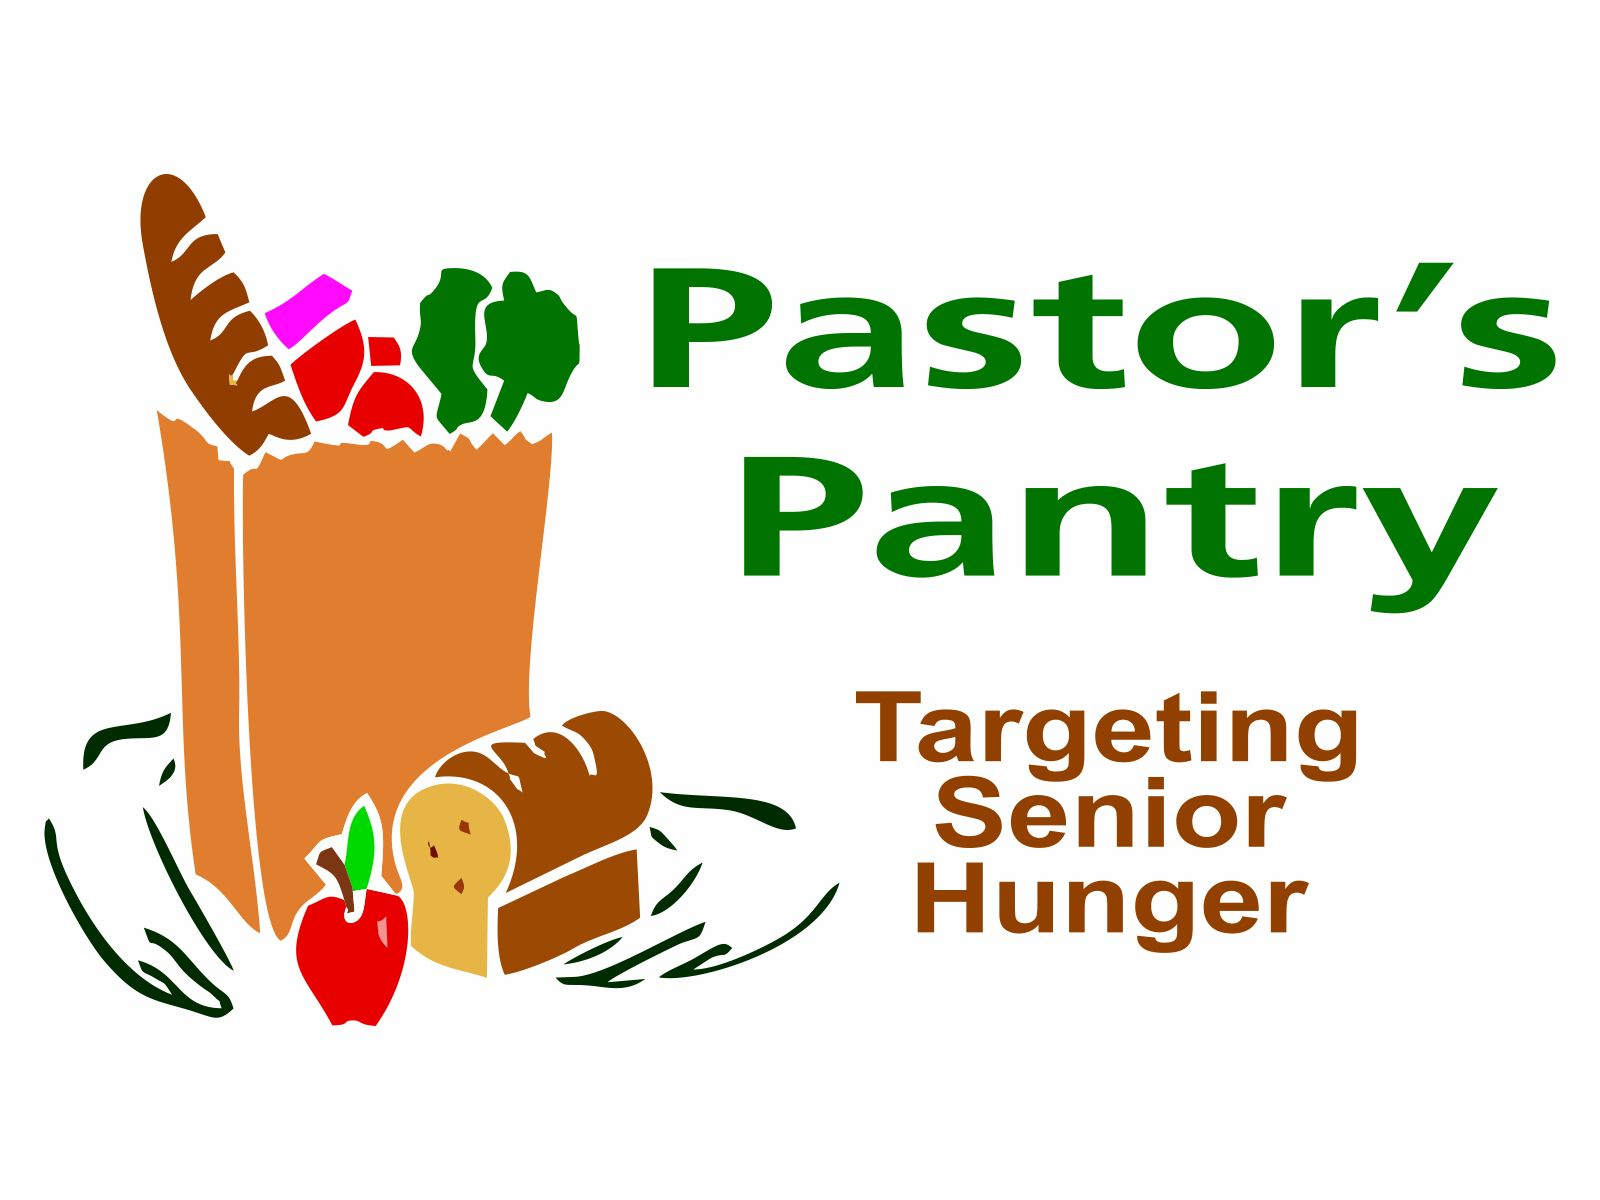 Pastors Pantry Logo - High Res JPEG from Signworks